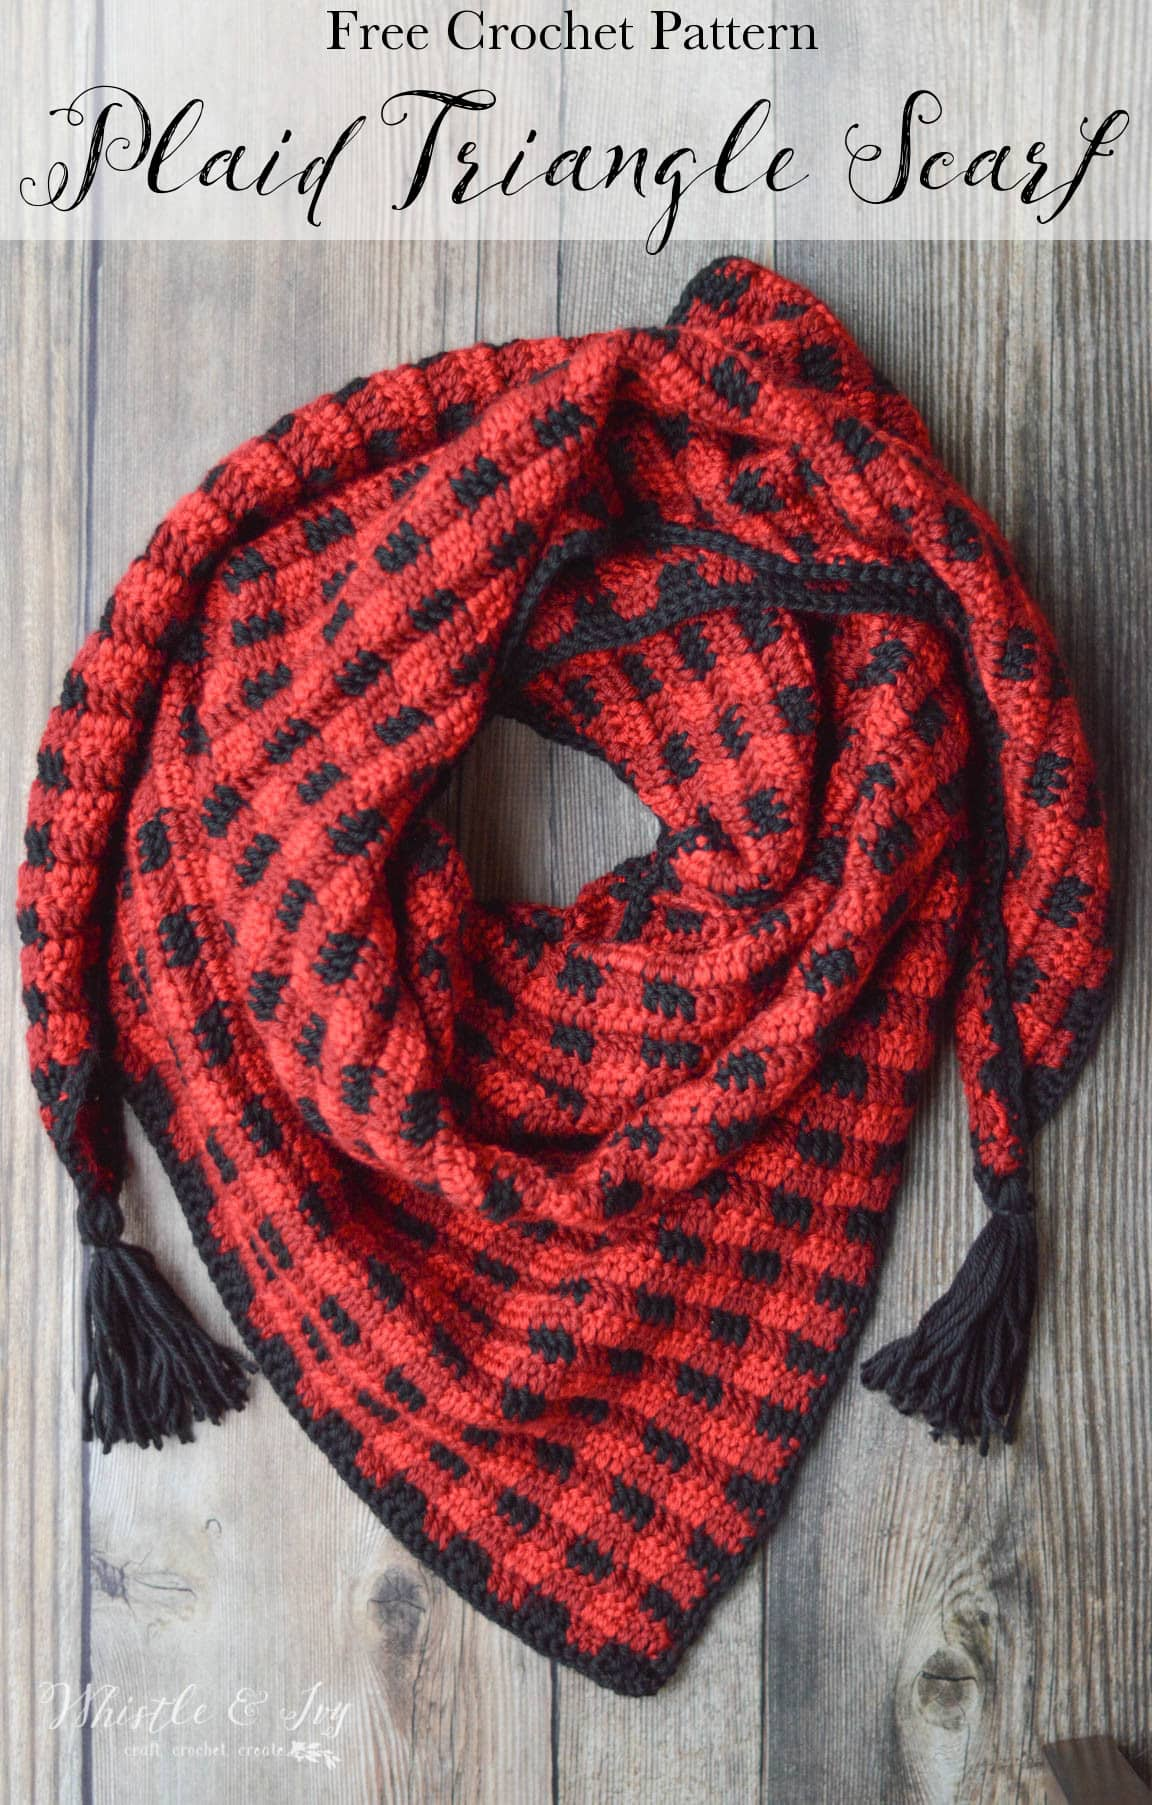 Crochet Plaid Triangle Scarf Free Crochet Pattern Whistle And Ivy